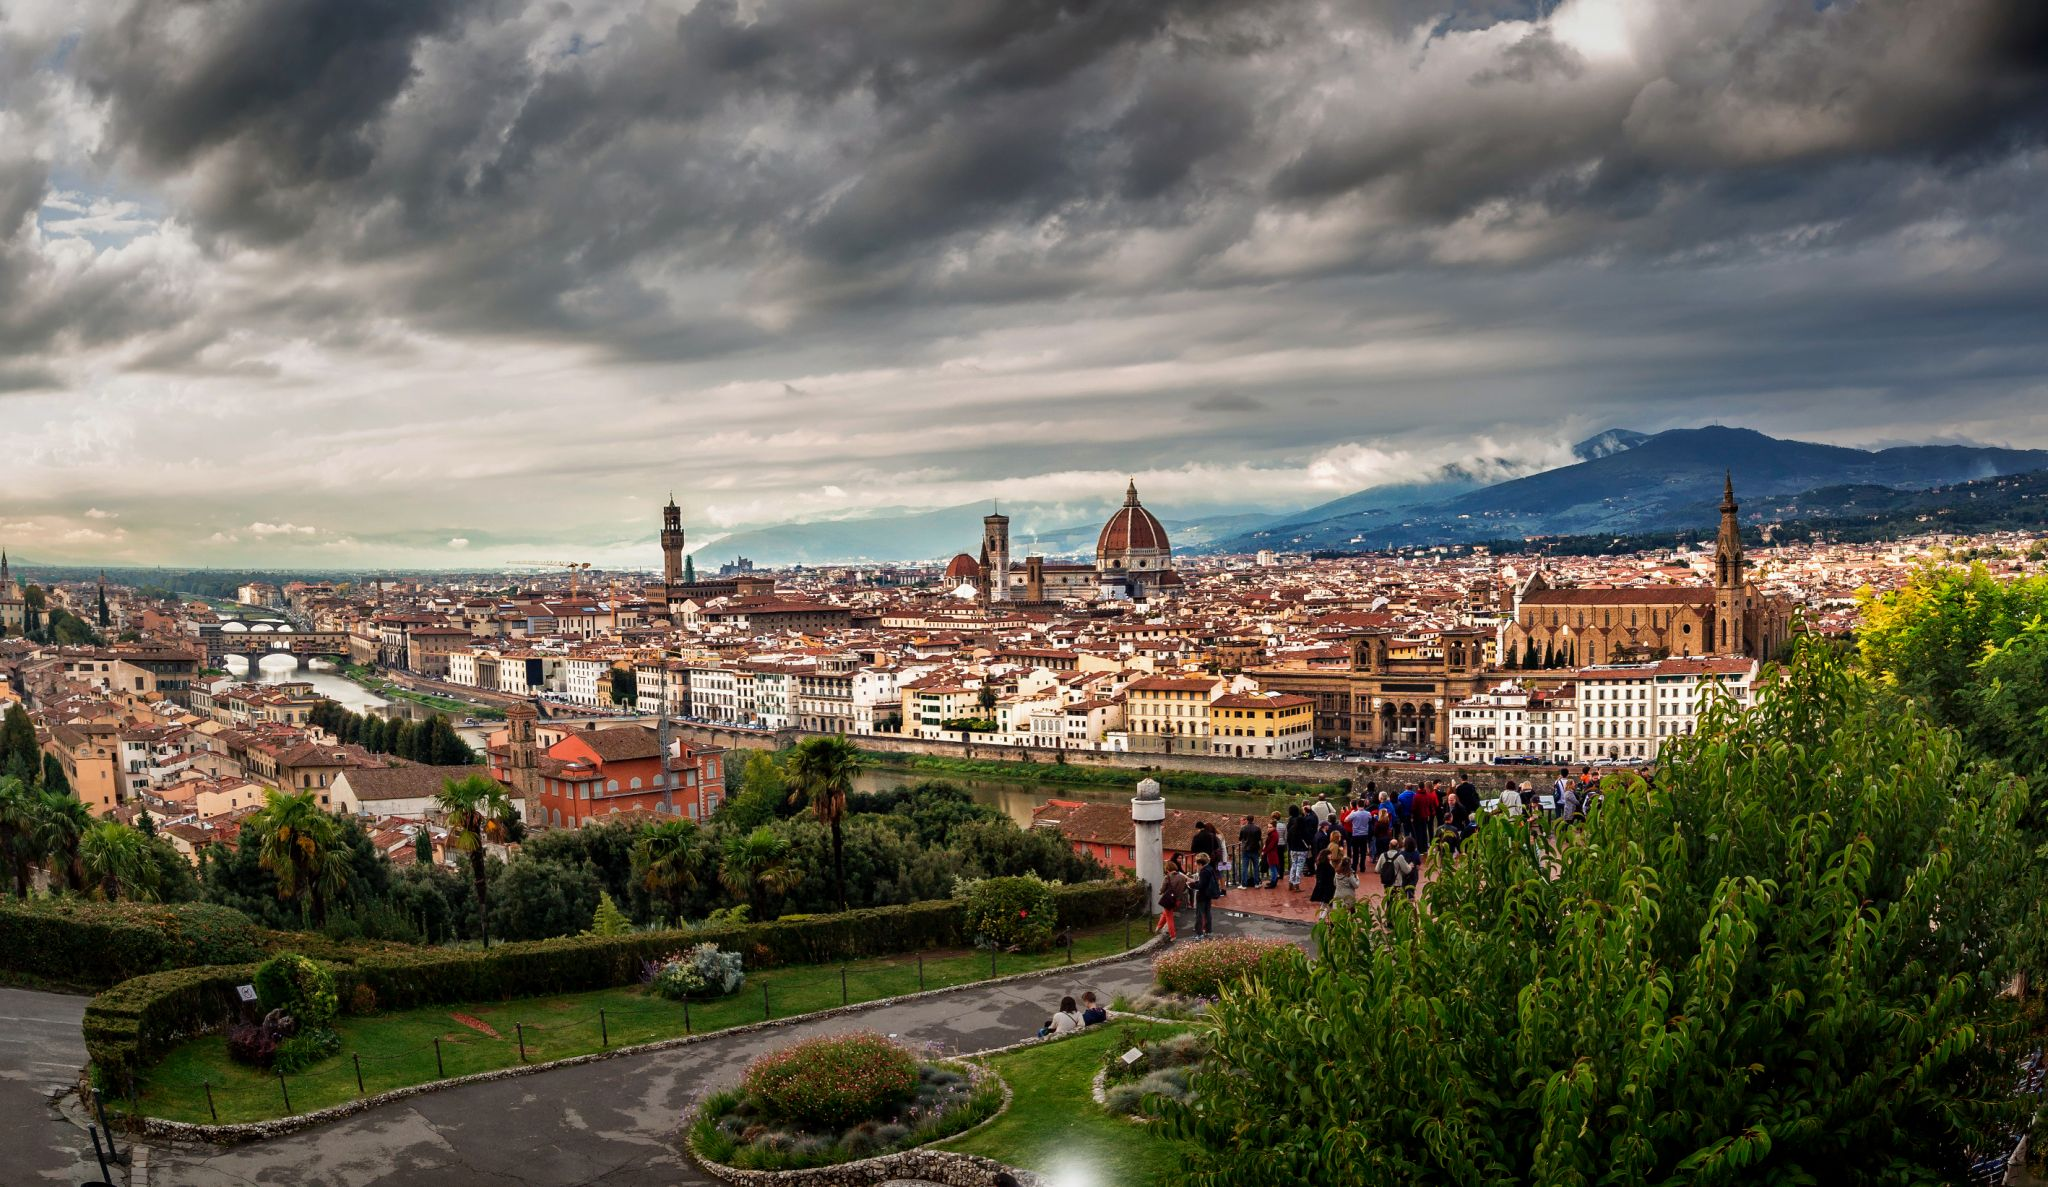 Panoramic view of Florence from Piazzale Michelangelo, Italy